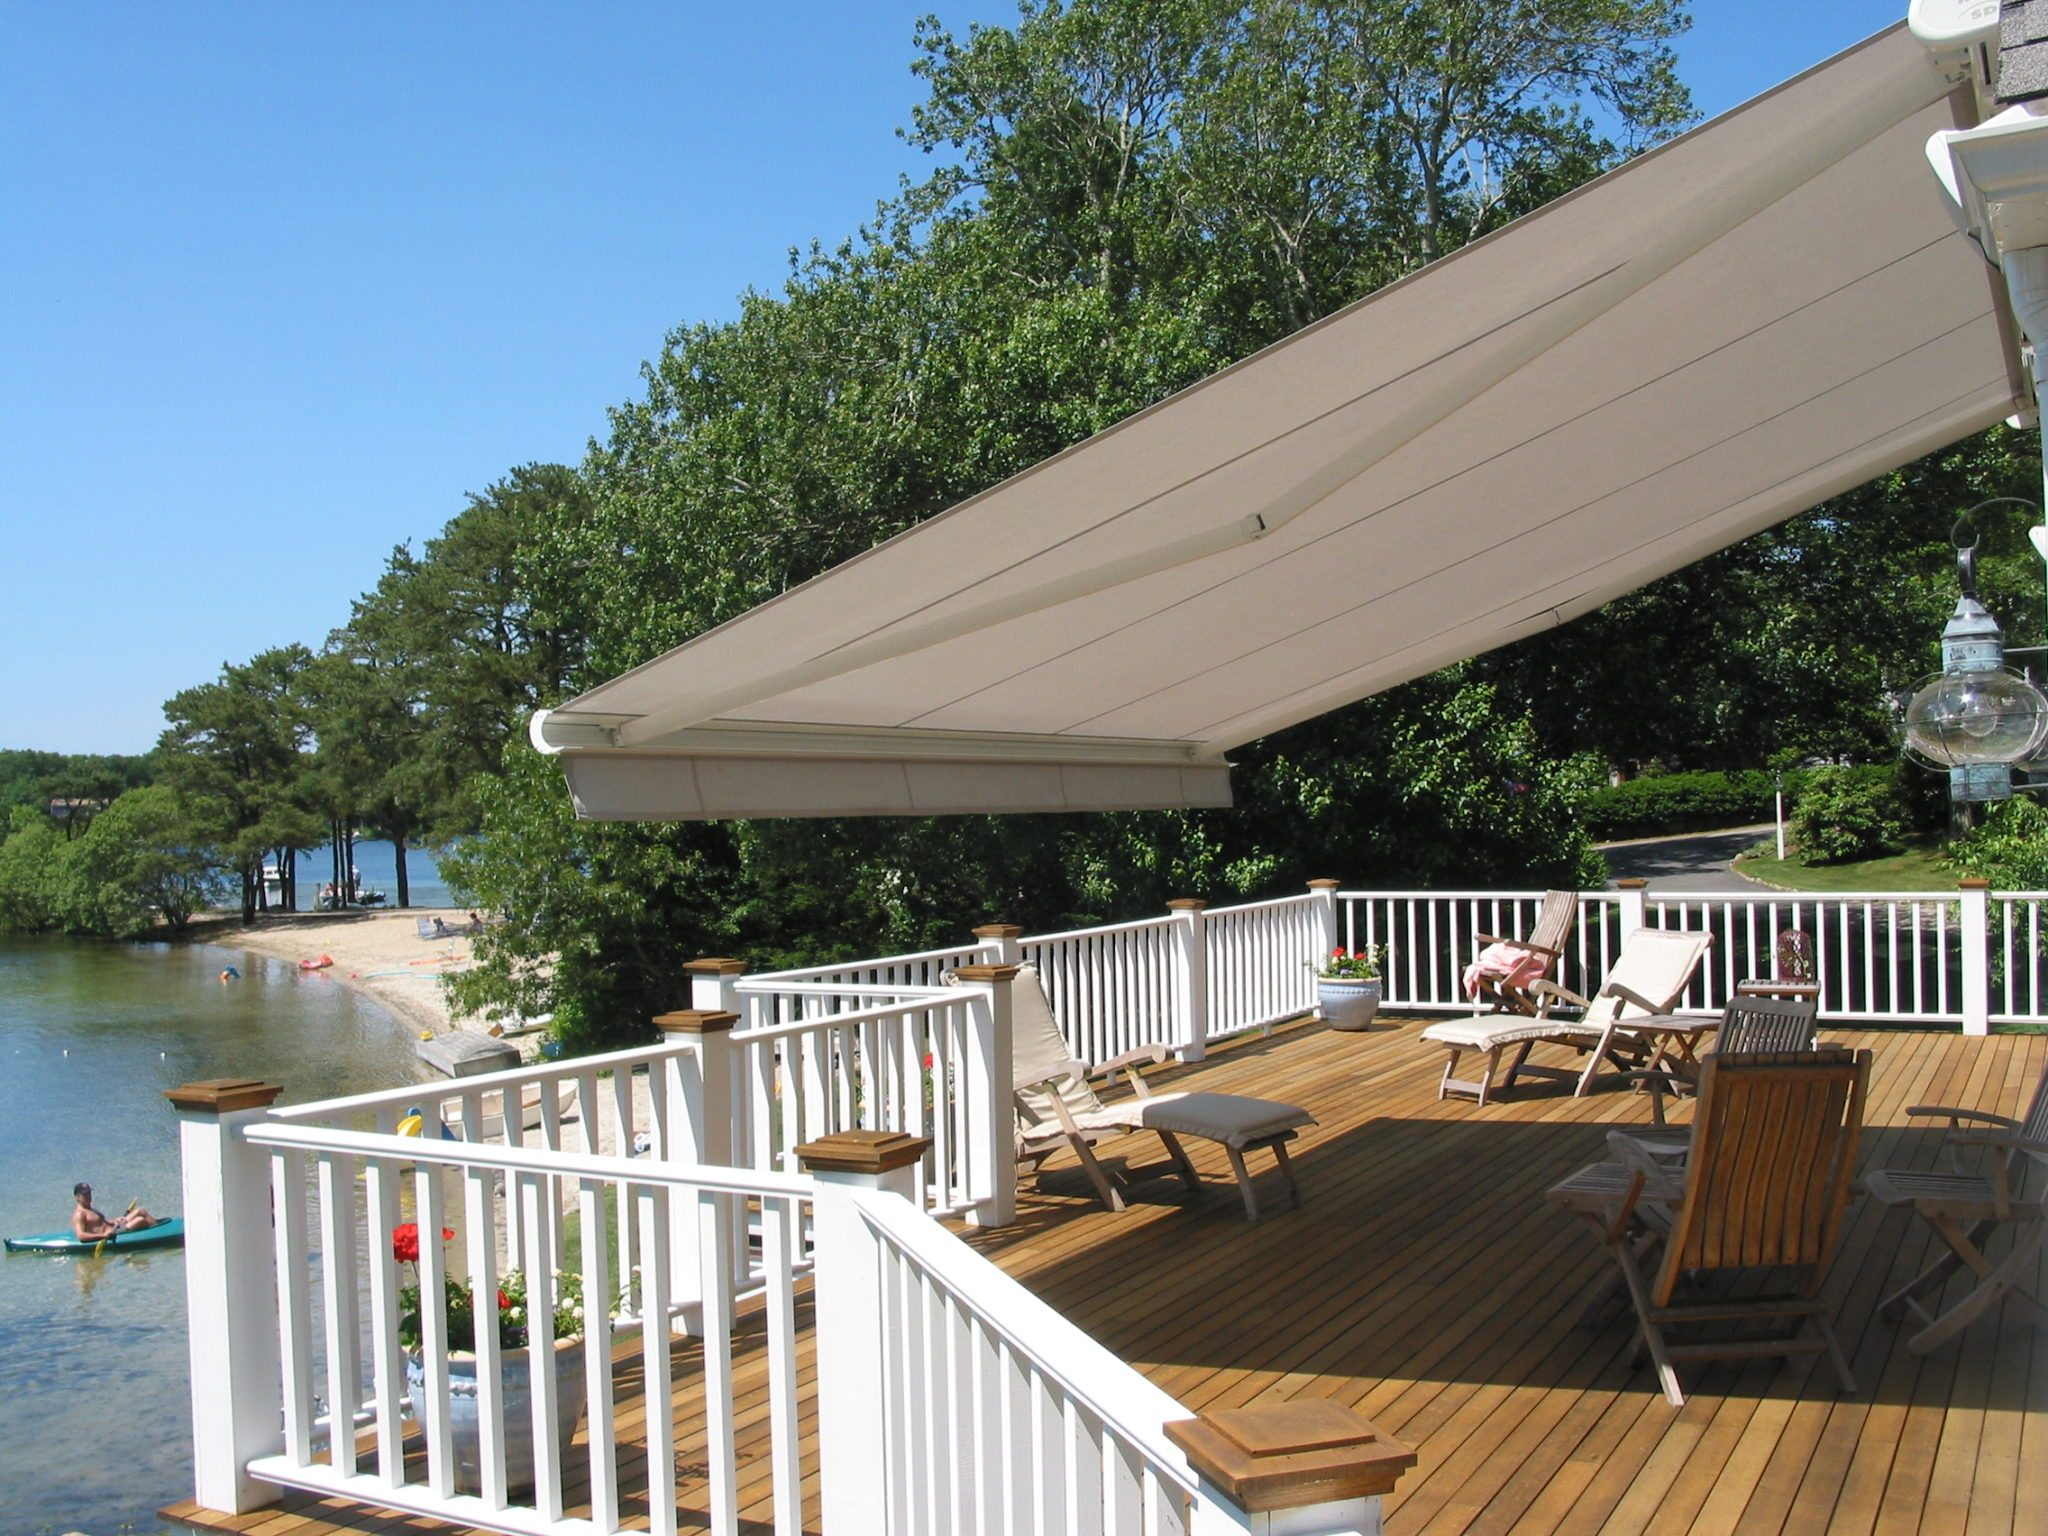 Retractable Awnings, Retractable Awning, Retractable Awning Cape Cod, Retractable Awning Ma, Retractable Awning CT, Retractable Awning Long Island